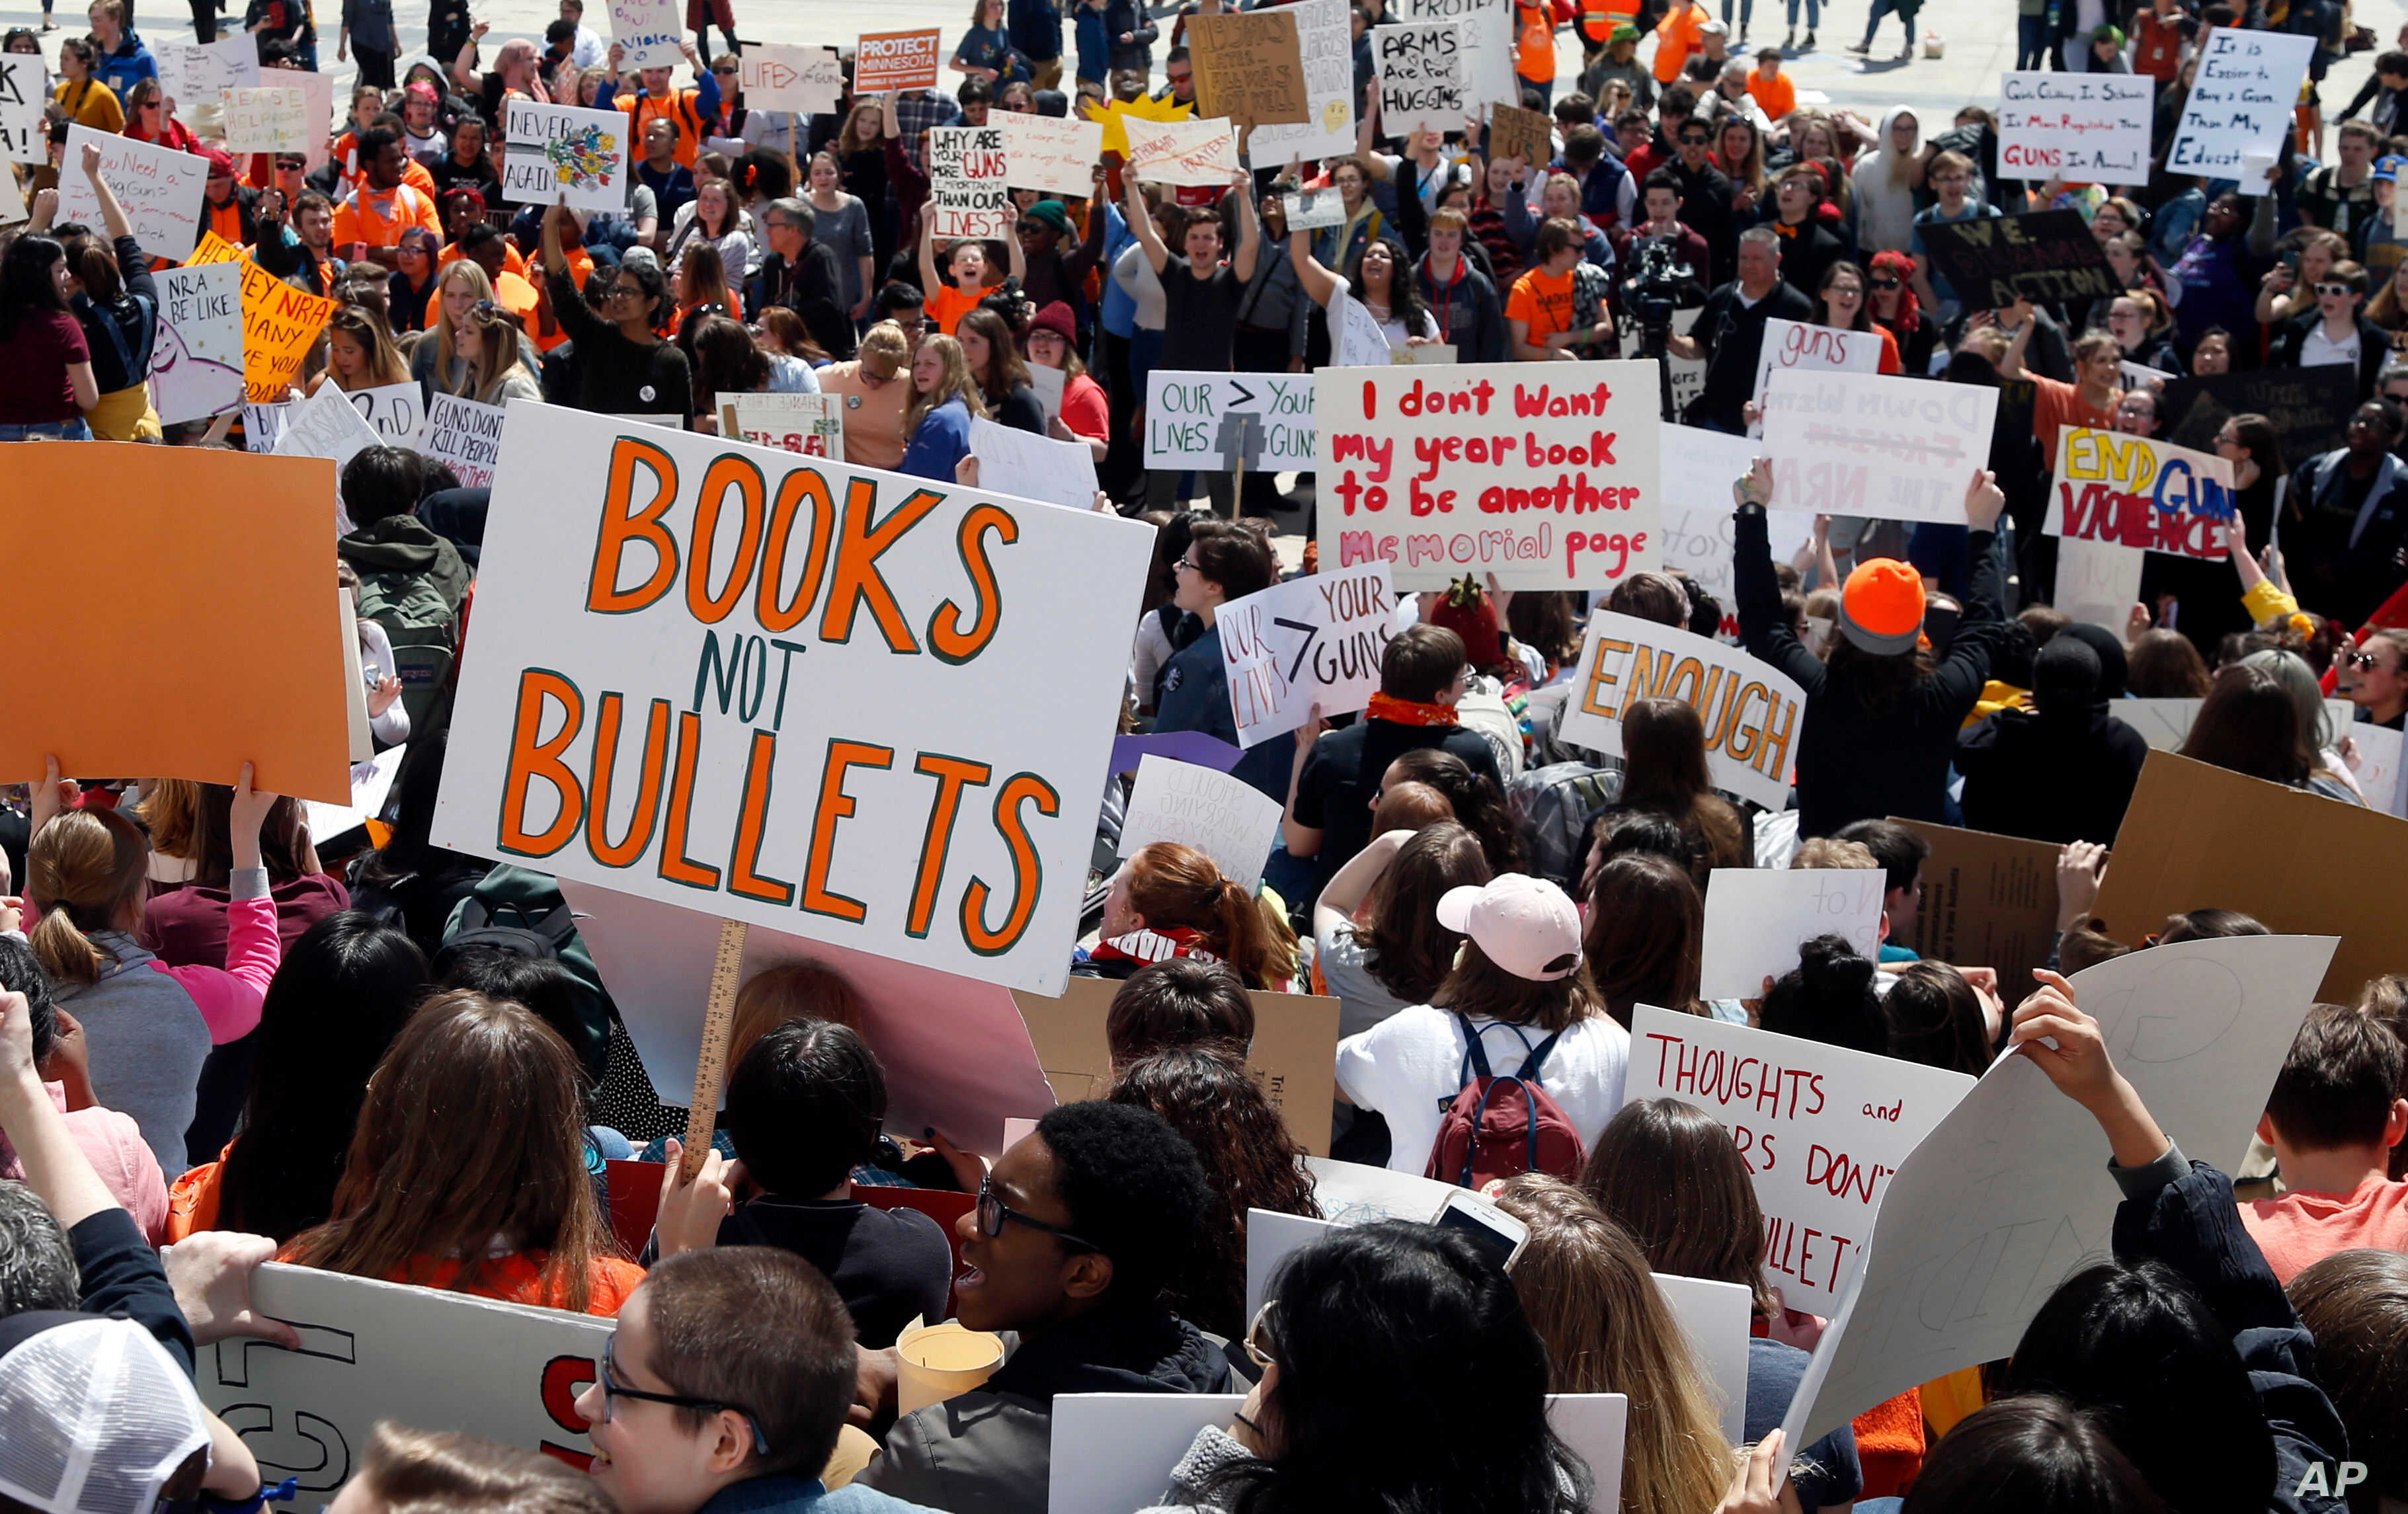 Hundreds of students gather, April 20, 2018, at the Capitol in St. Paul, Minn., to protest gun violence, part of a national high school walkout on the 19th anniversary of the Columbine shootings.